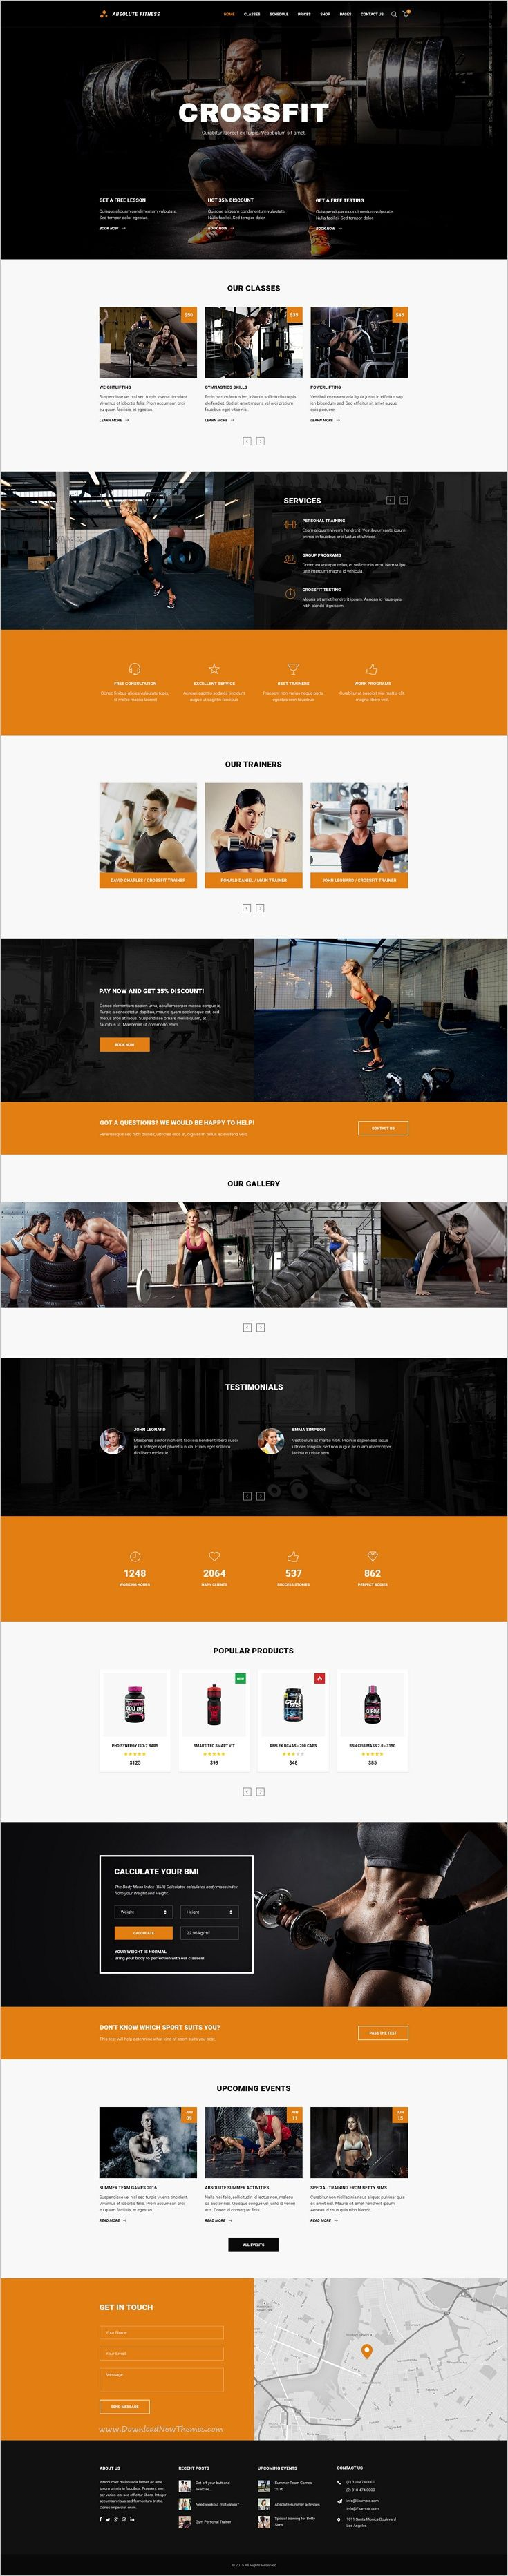 Absolute Fitness is a modern and functional #Photoshop #Theme for #GYM sports #clubs in different directions: Fitness, Bodybuilding, Boxing, Dancing, Yoga, Personal Trainer website with 13 unique homepage layouts and 46 organized PSD pages download now➩ https://themeforest.net/item/absolute-fitness-psd-template/18599187?ref=Datasata